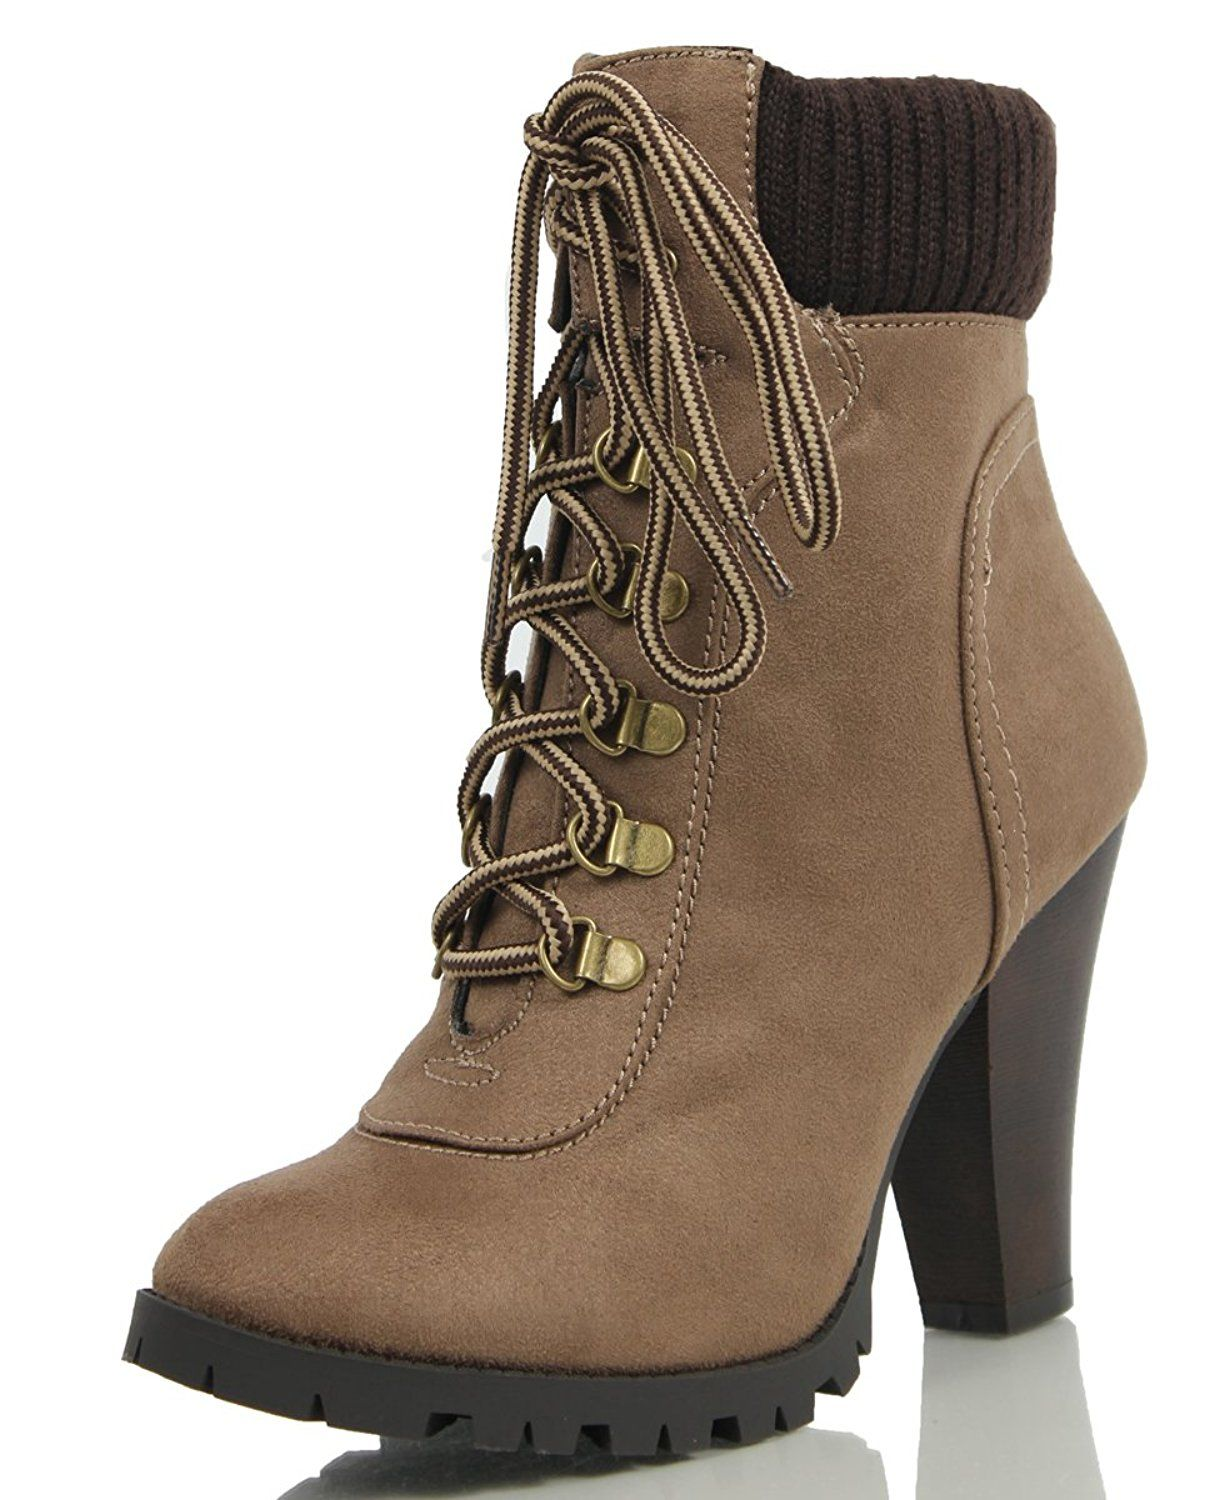 Womens Soda Women's Rouge Faux Suede Lace Up Combat Chic Work Boot High Heel Ankle Bootie Sale Size 39